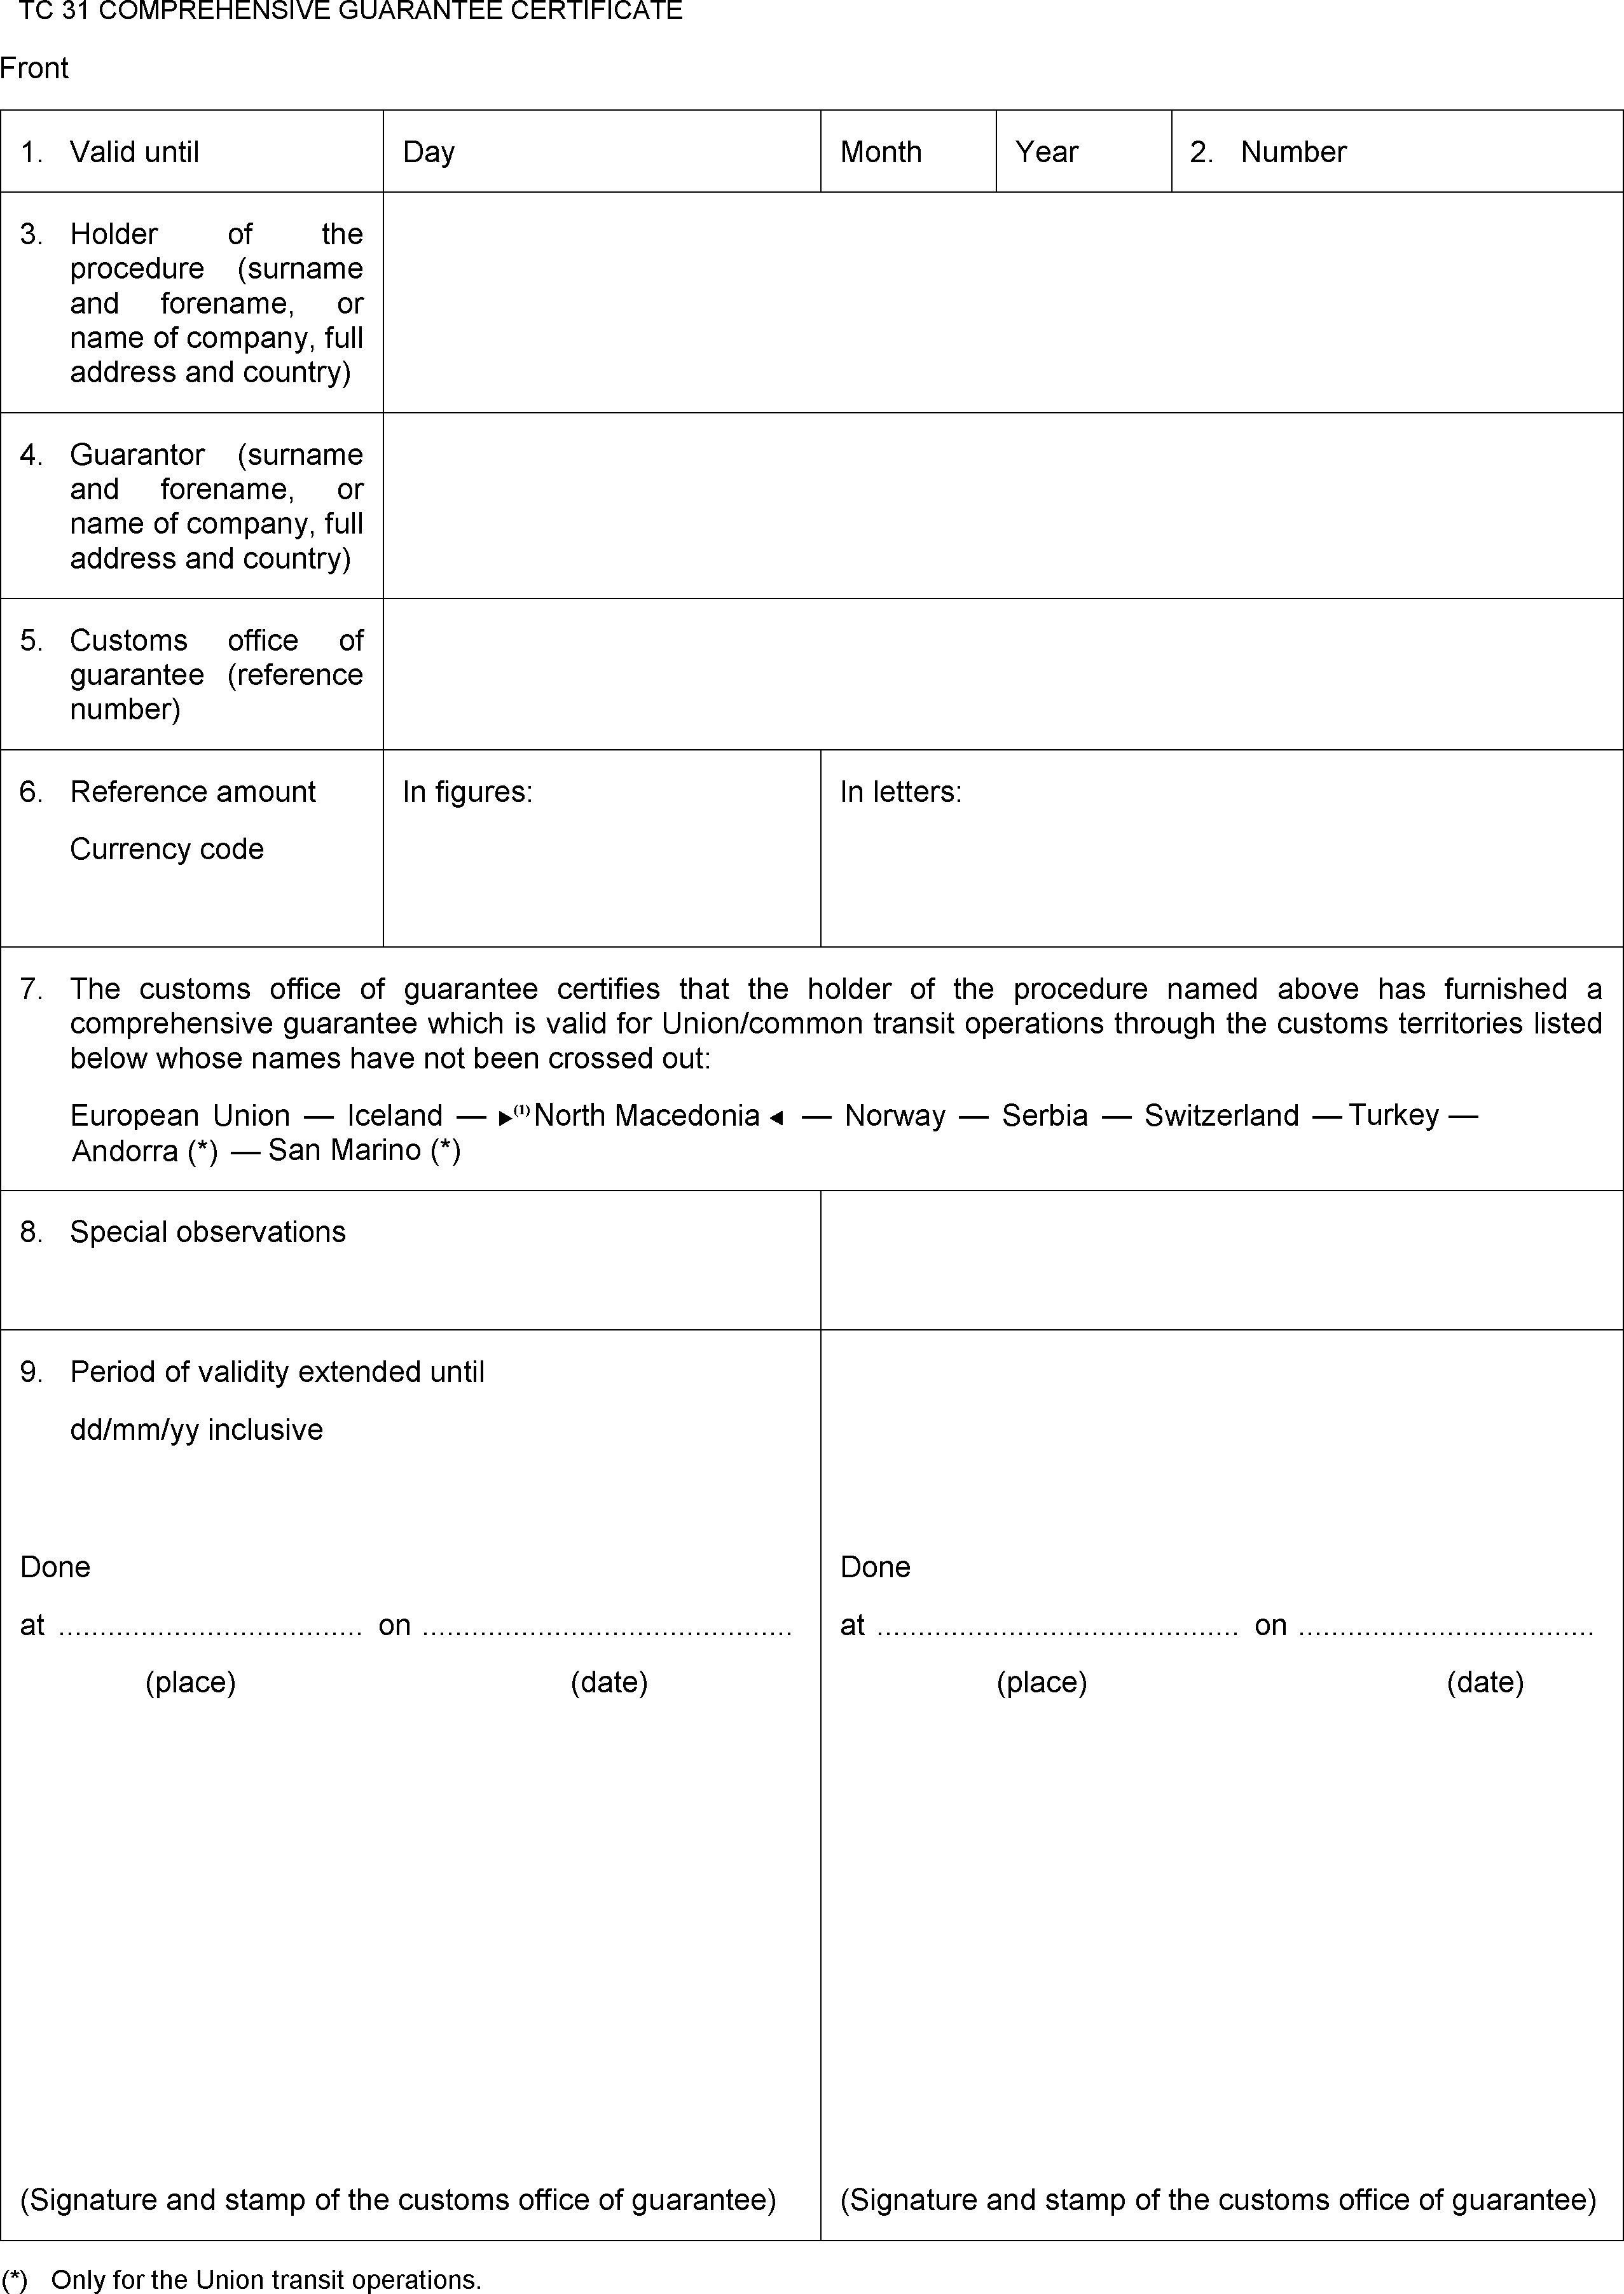 Consolidated TEXT R2447 EN 01 10 2019